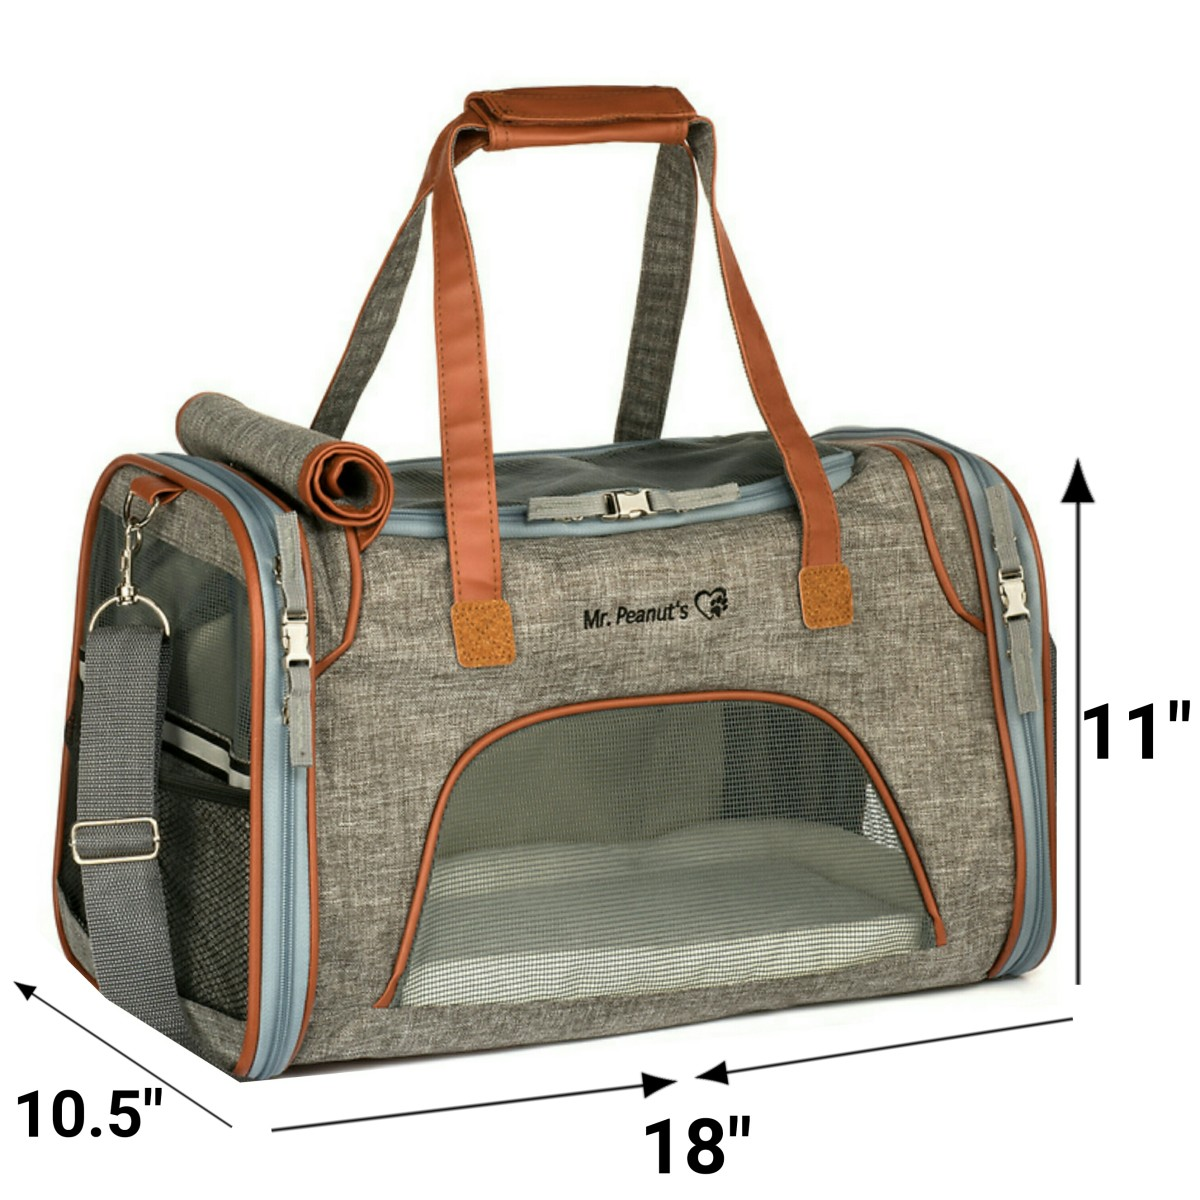 The Mr. Peanuts Airline Approved Soft-Sided Low Profile Travel Tote